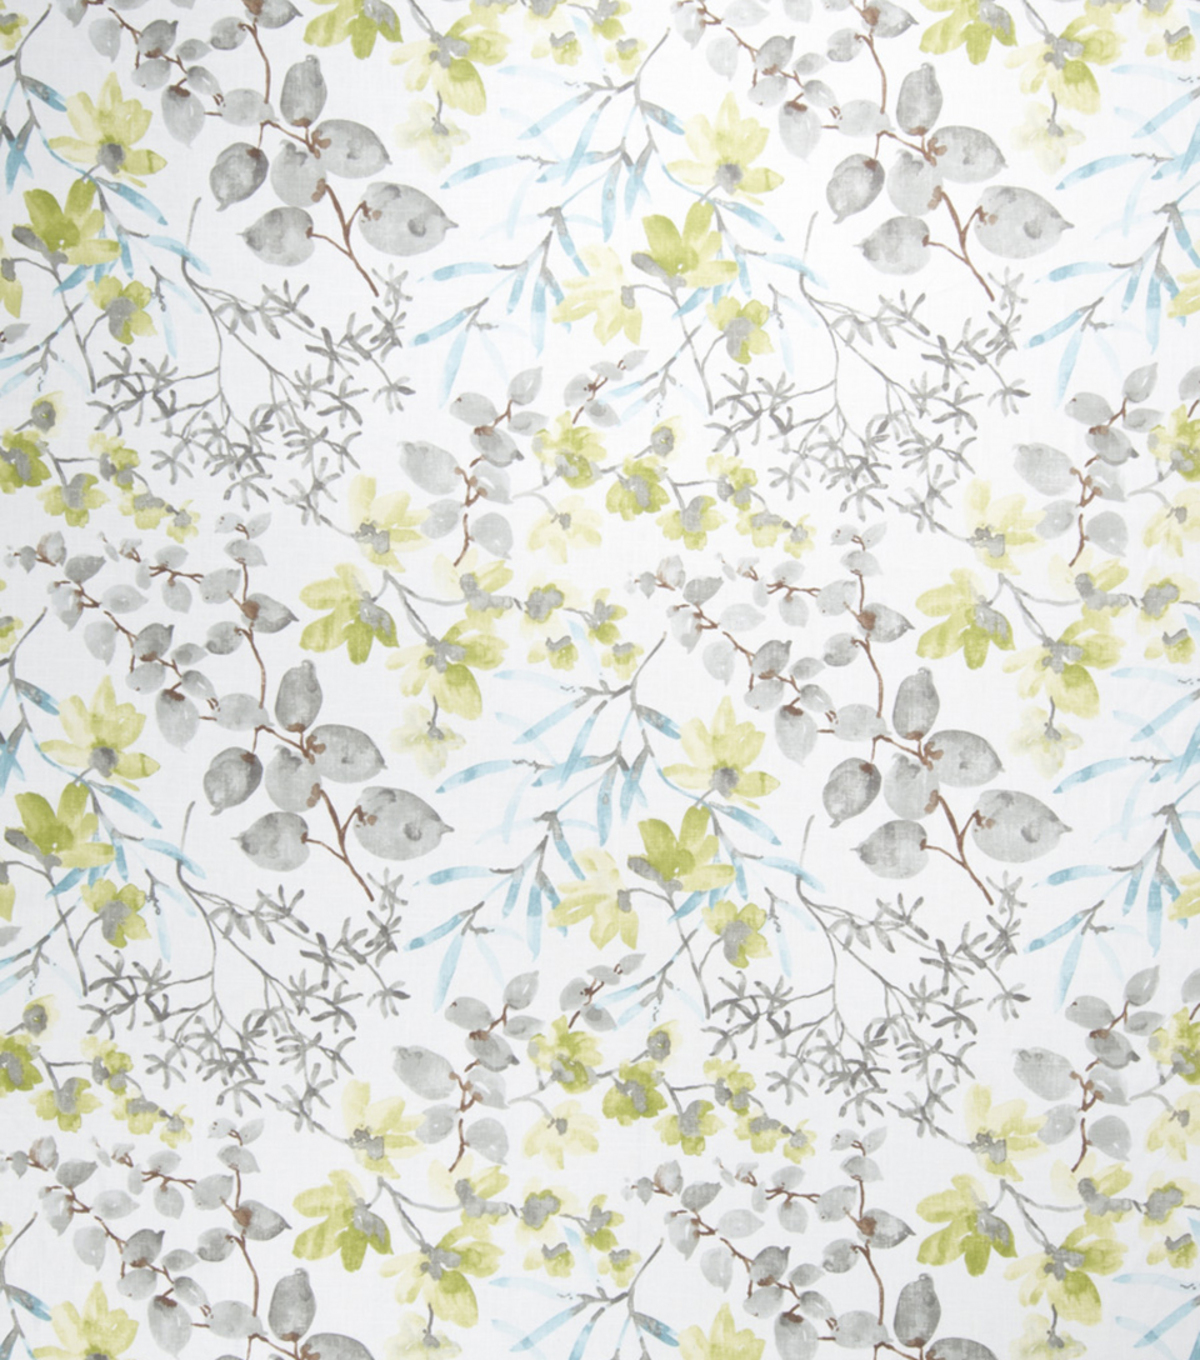 Home Decor 8\u0022x8\u0022 Fabric Swatch-Upholstery Fabric Eaton Square Freida Cloud